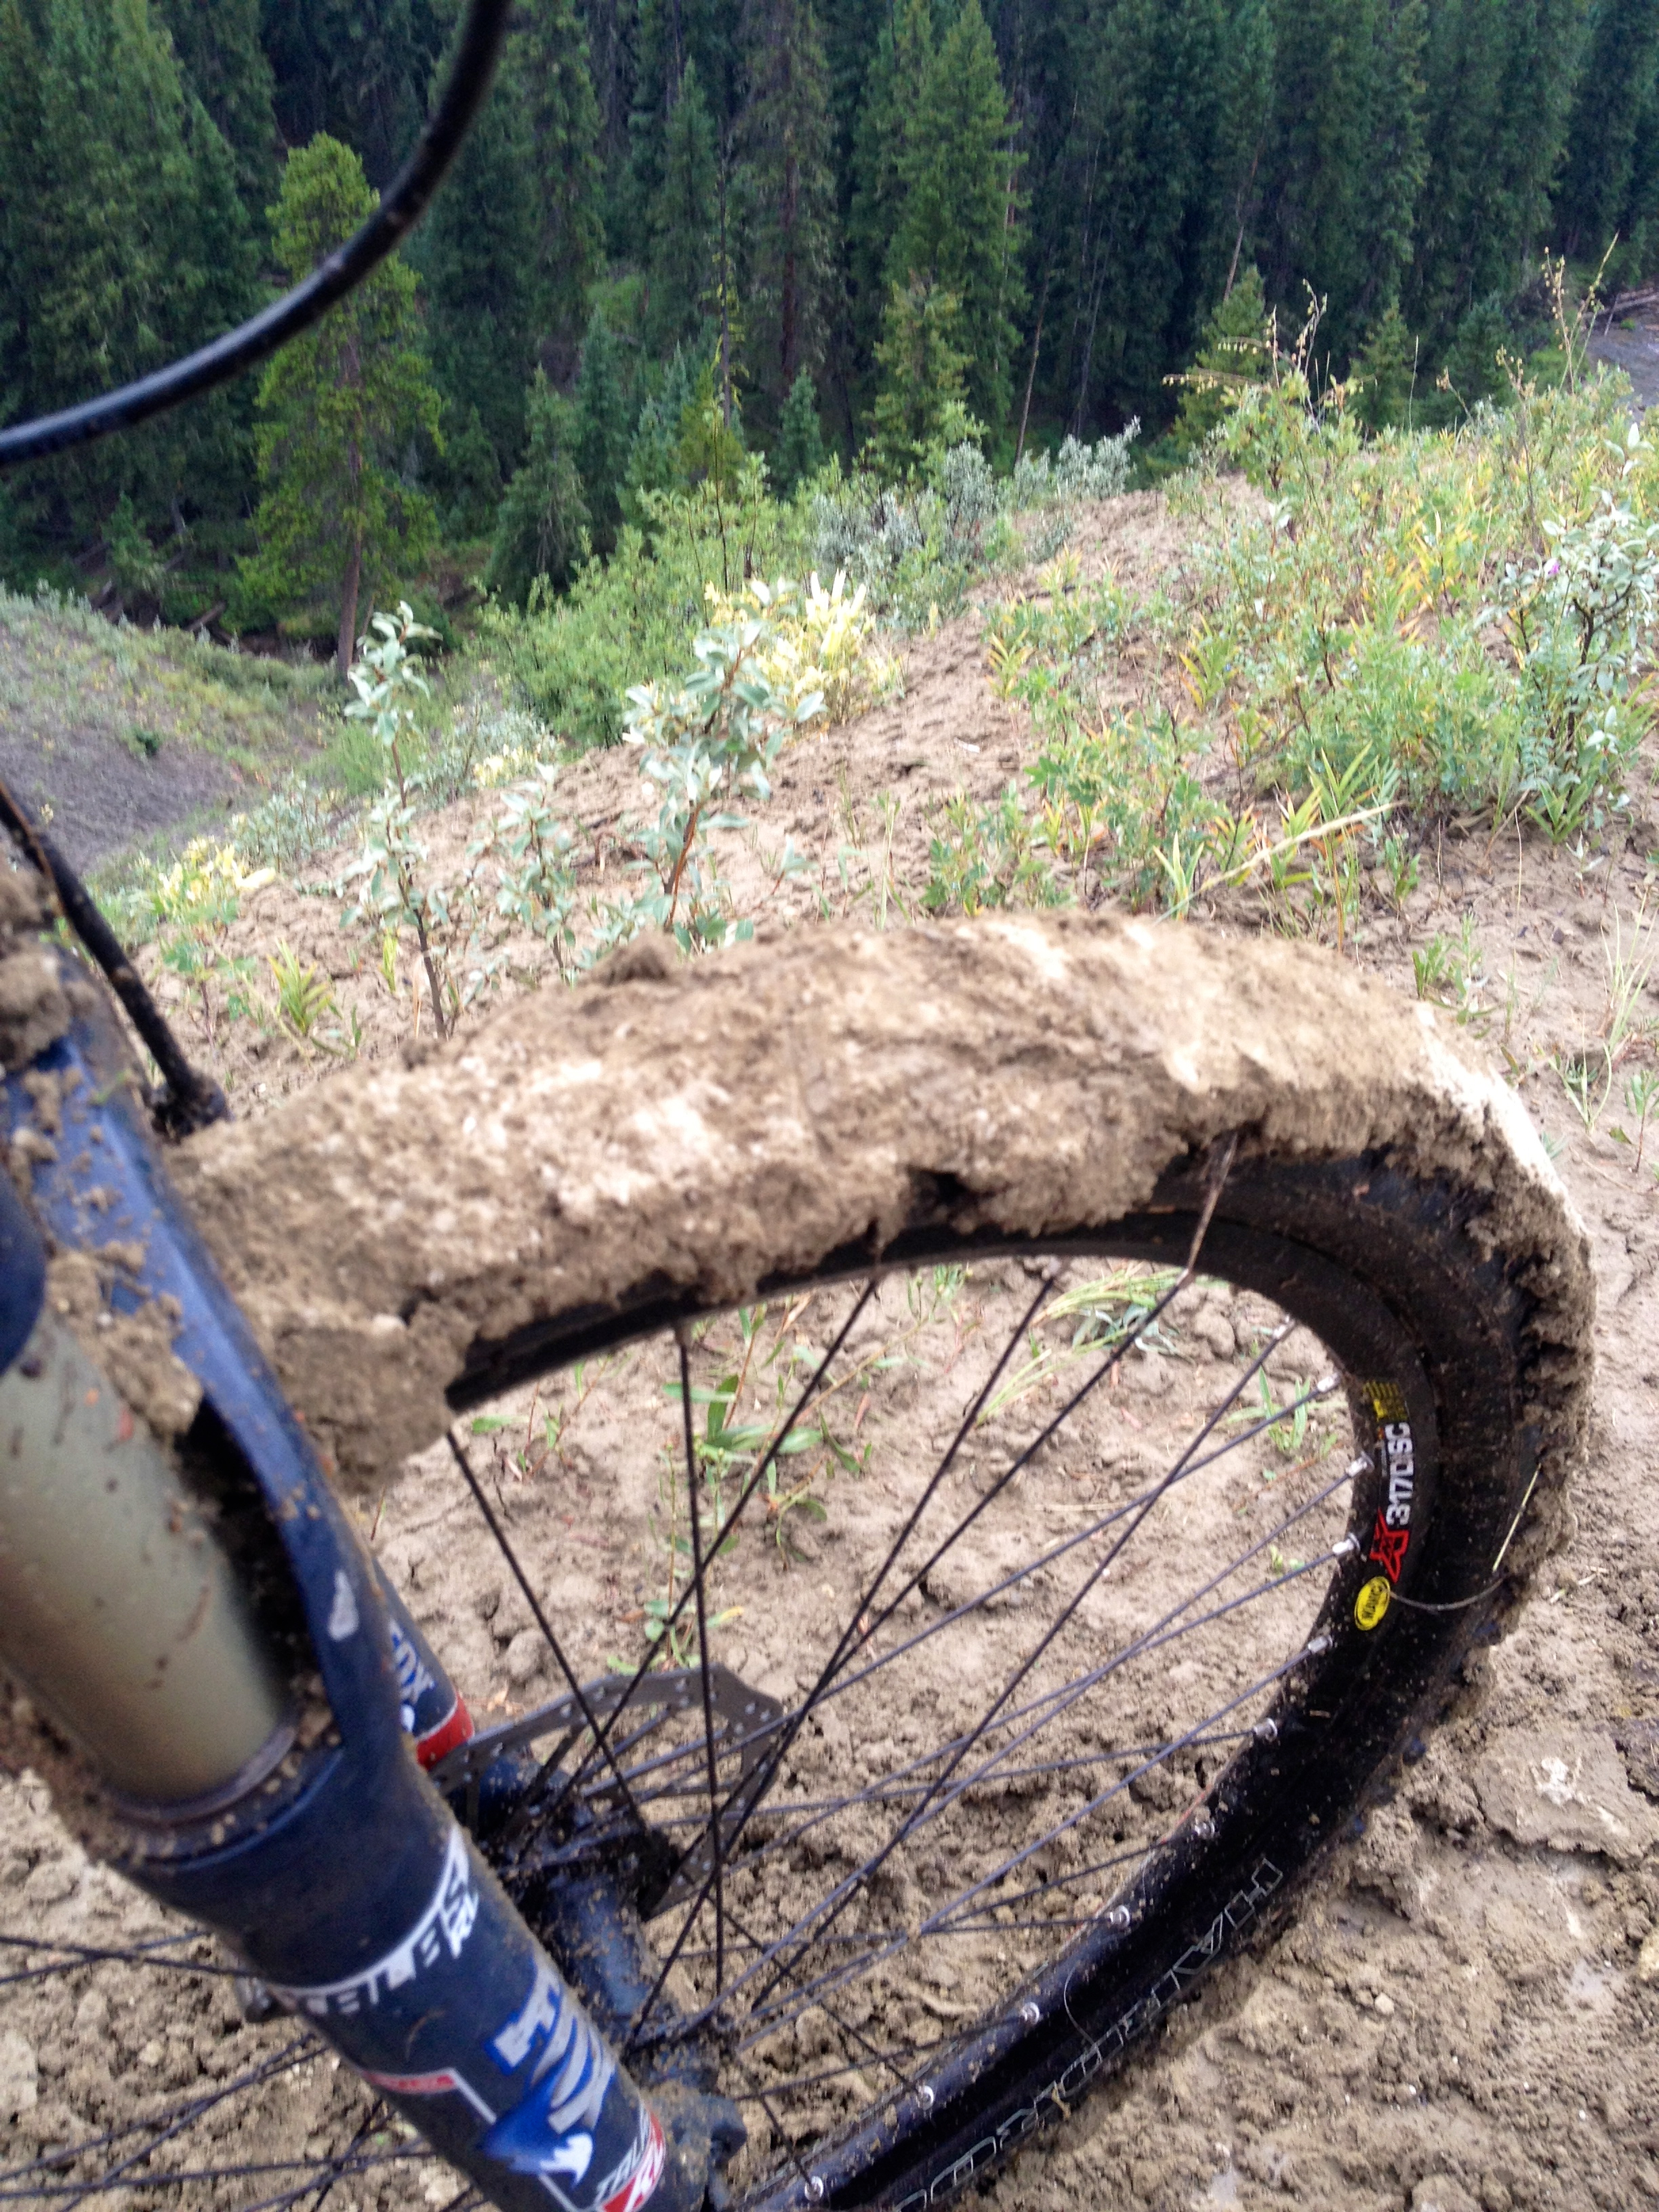 Muck adds a challenge (notice the steep drop off next to the trail).